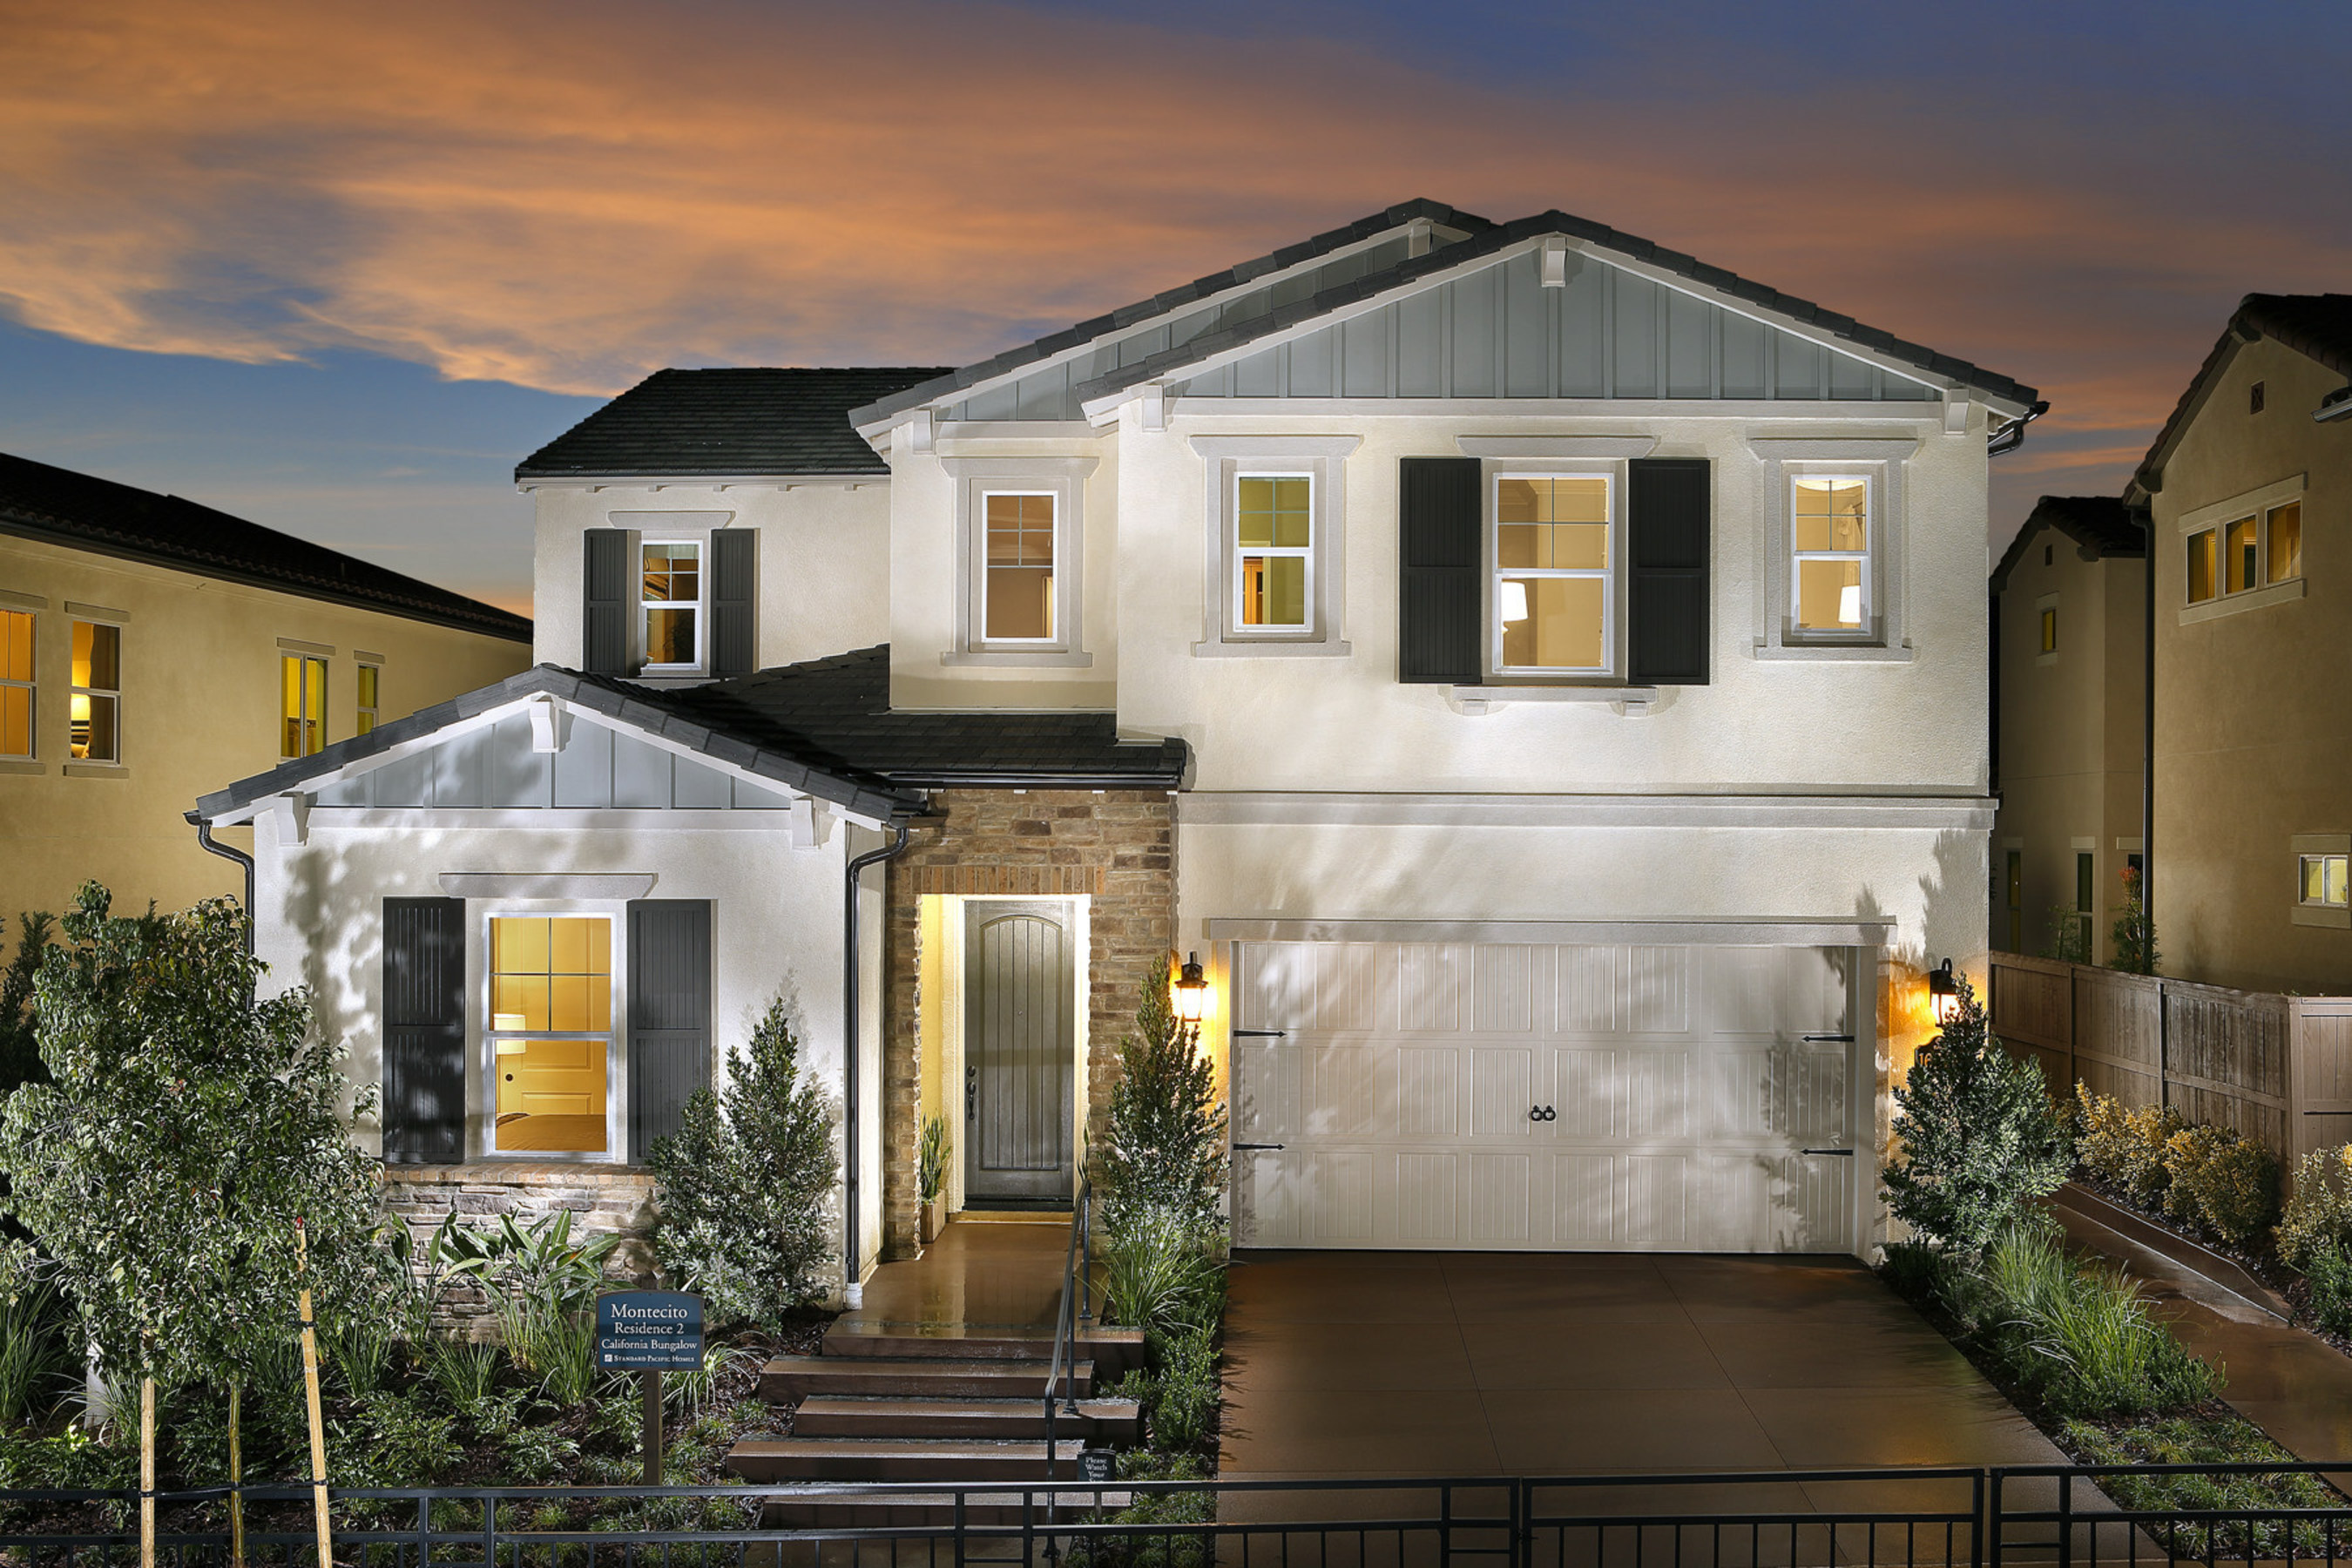 Standard pacific homes announces new community within san for Pacific home collection